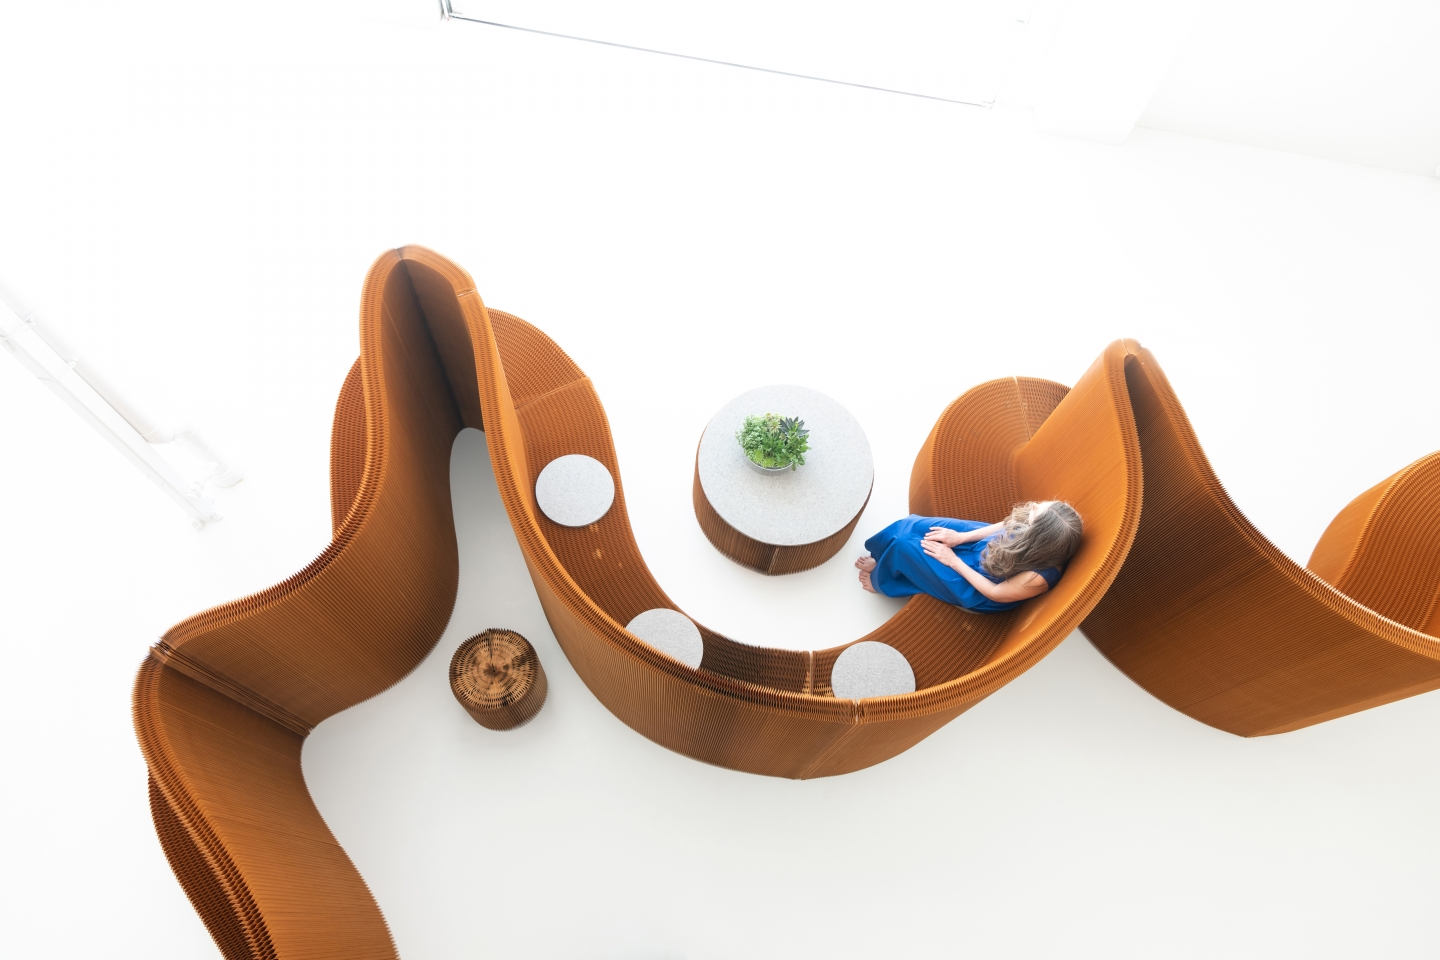 benchwall, a flexible furniture system, creates meeting rooms for open concept office space